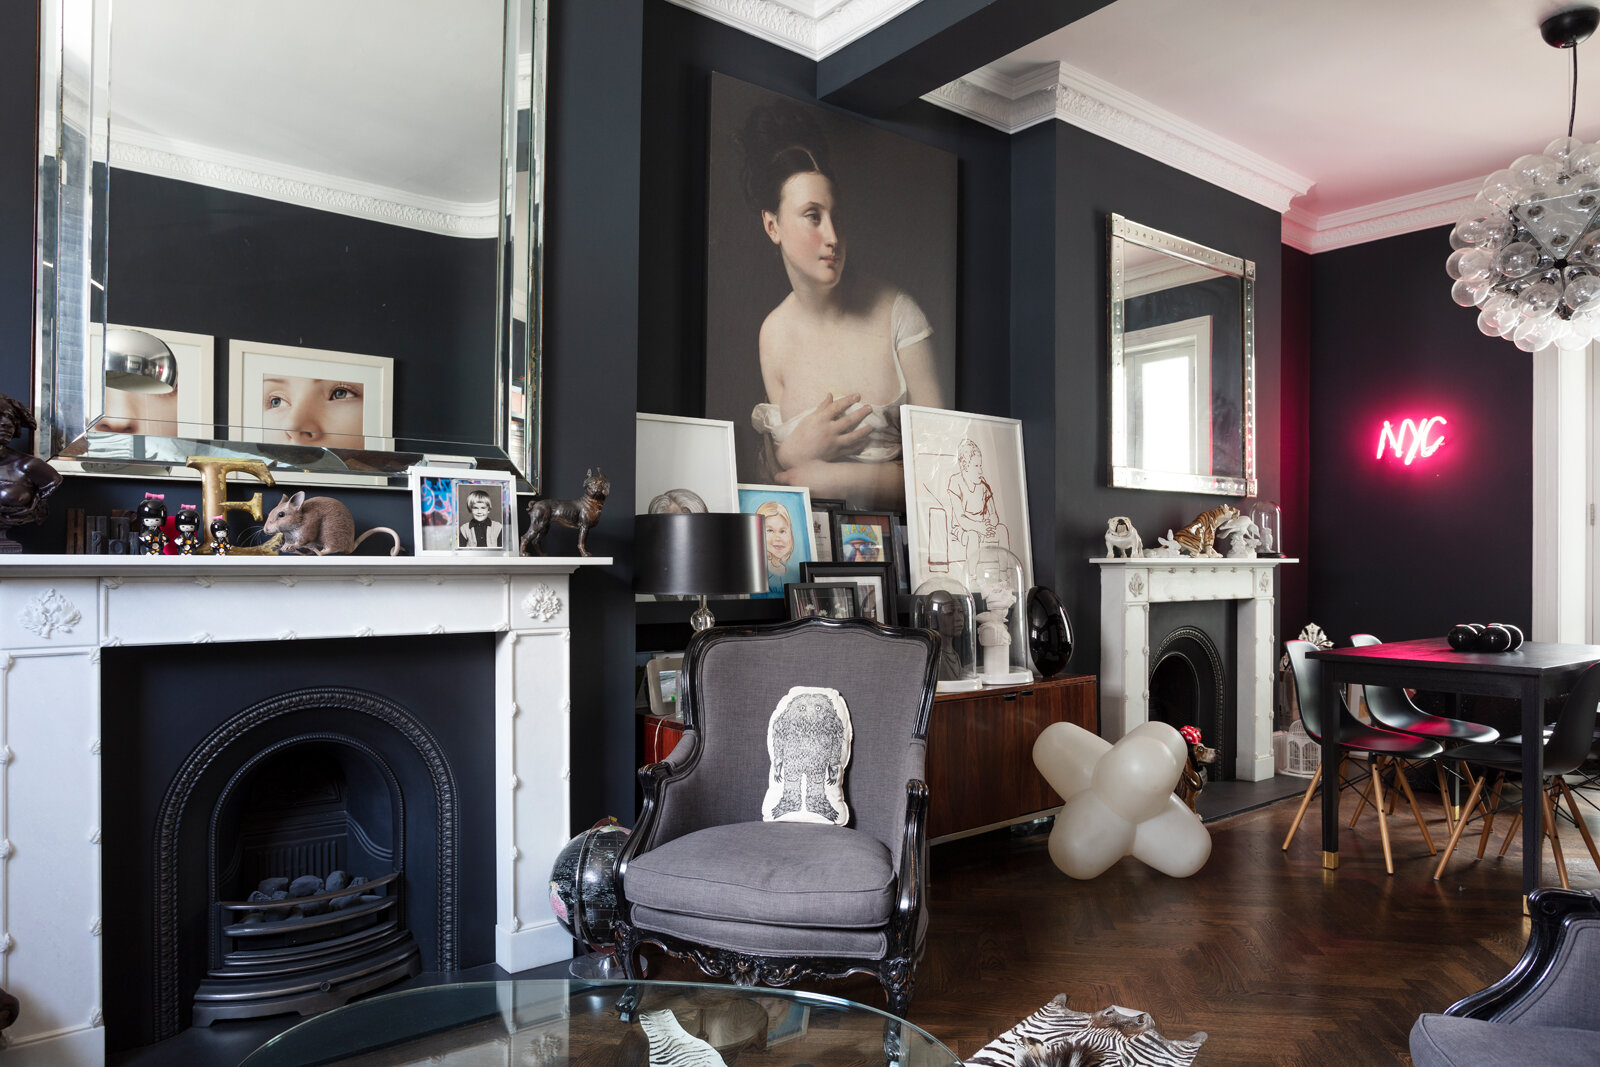 Black sitting room painted in Farrow & Ball's Railings with pink neon sign